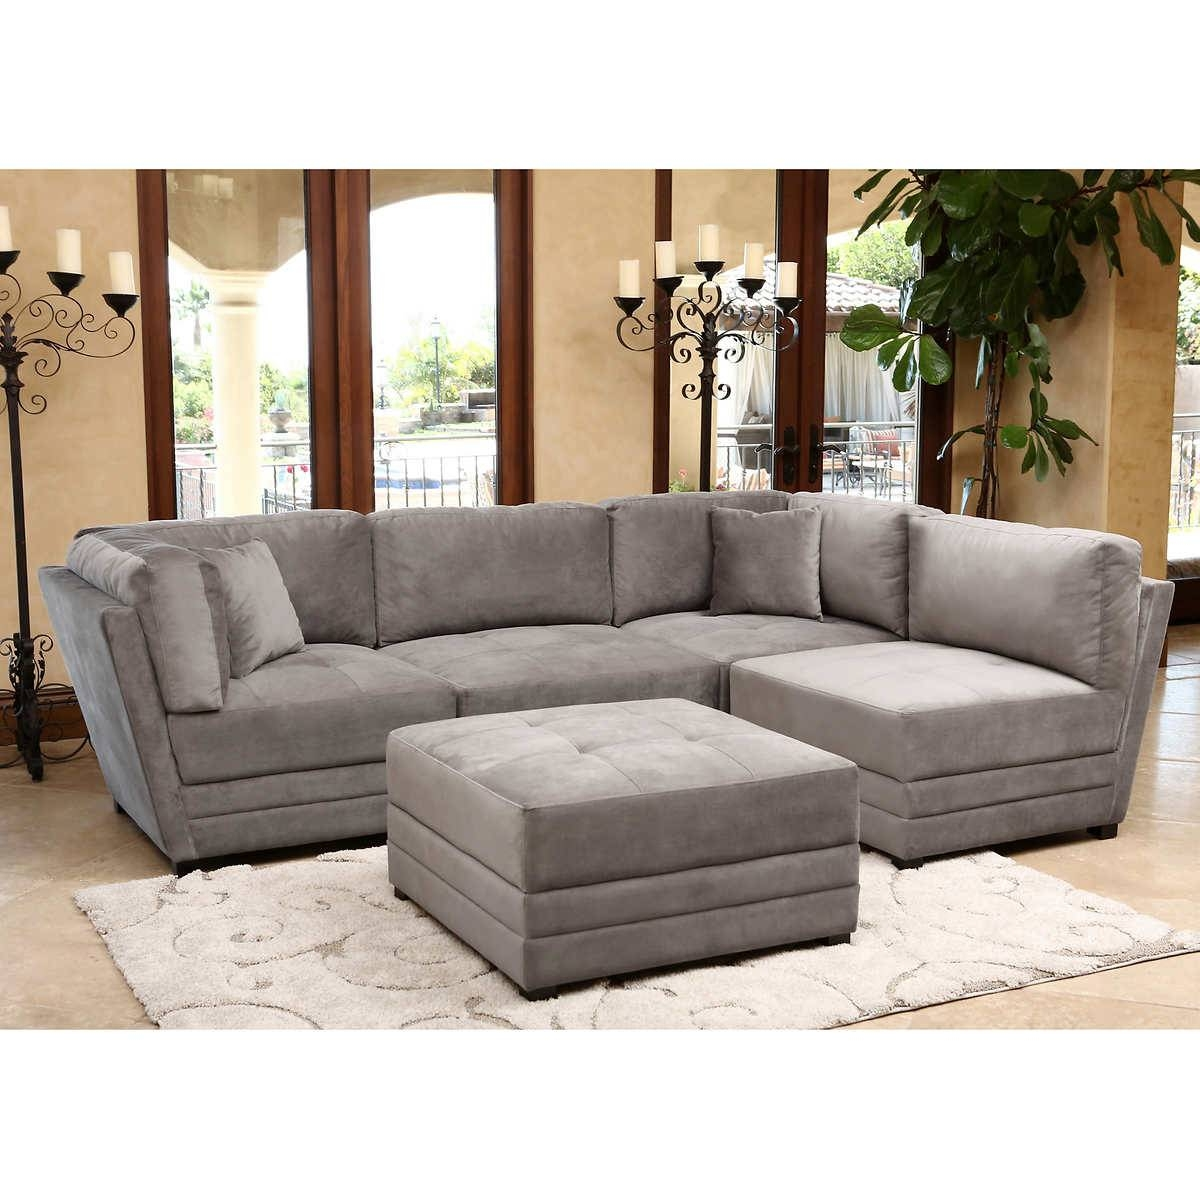 Furniture: Exciting Sectional Sofas Costco For Your Family Room pertaining to 6 Piece Modular Sectional Sofa (Image 14 of 30)